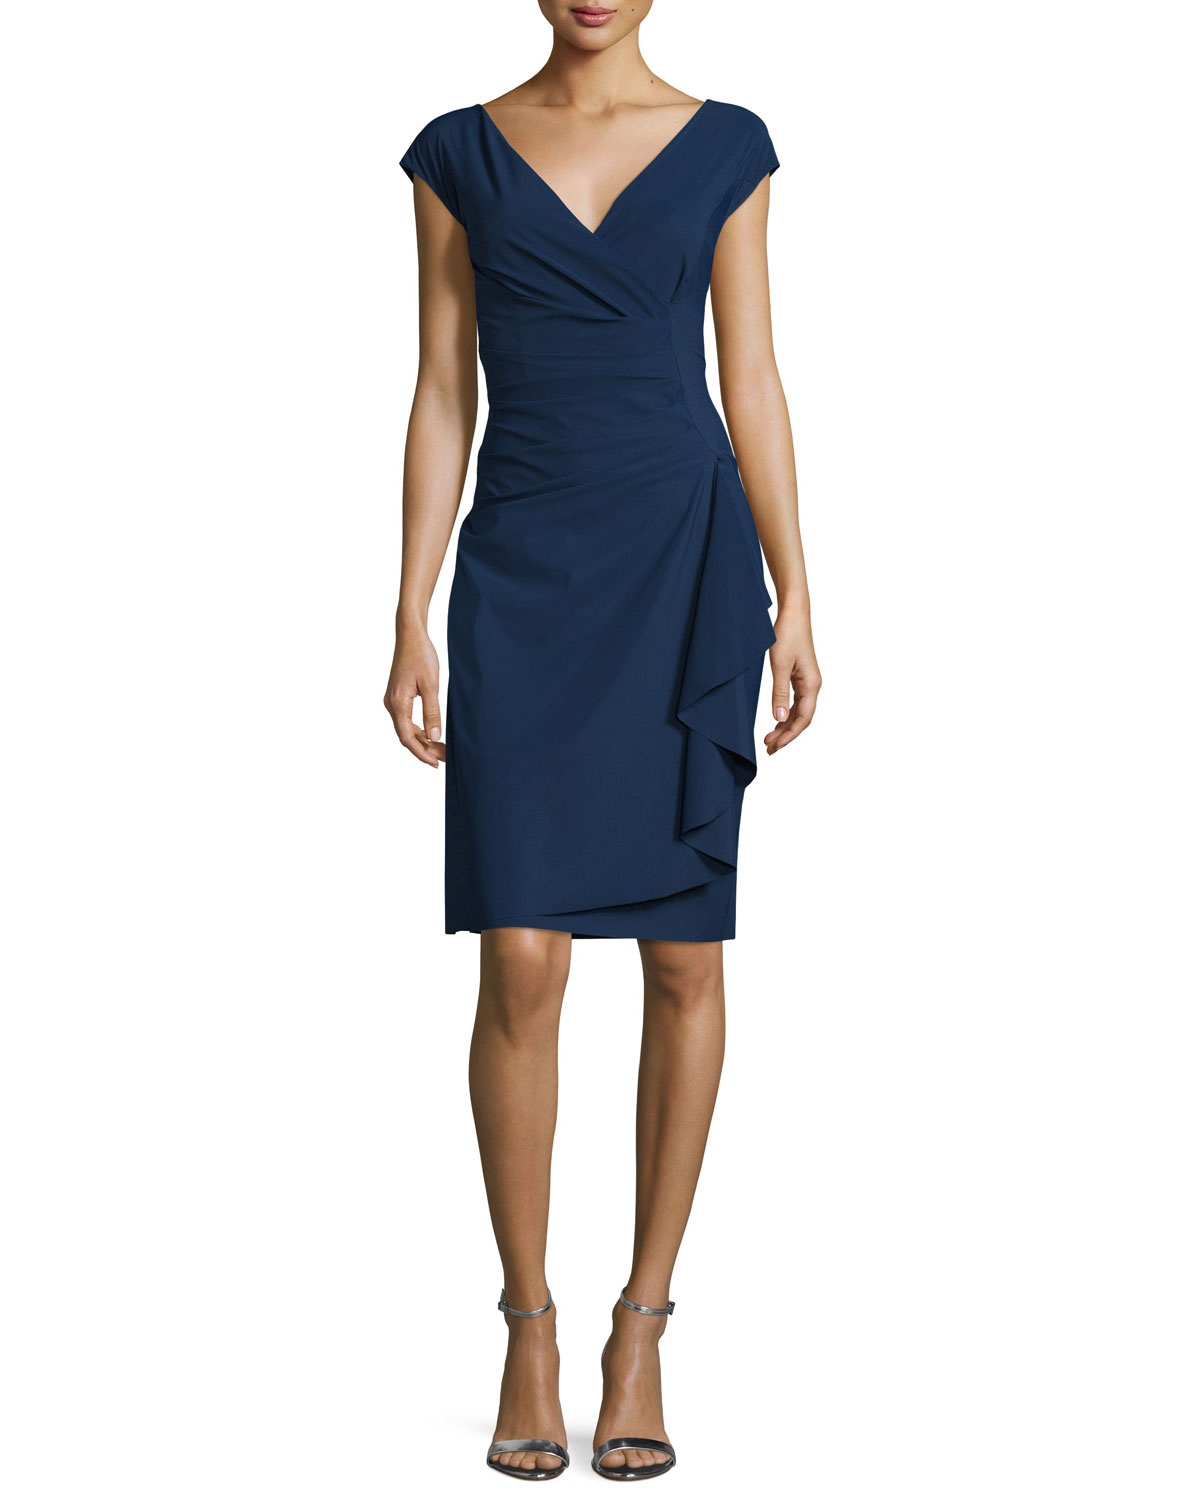 7524ac5ce3e9 Chiara Boni La Petite Robe Charis Side-Ruffle Cocktail Dress, Blue Notte